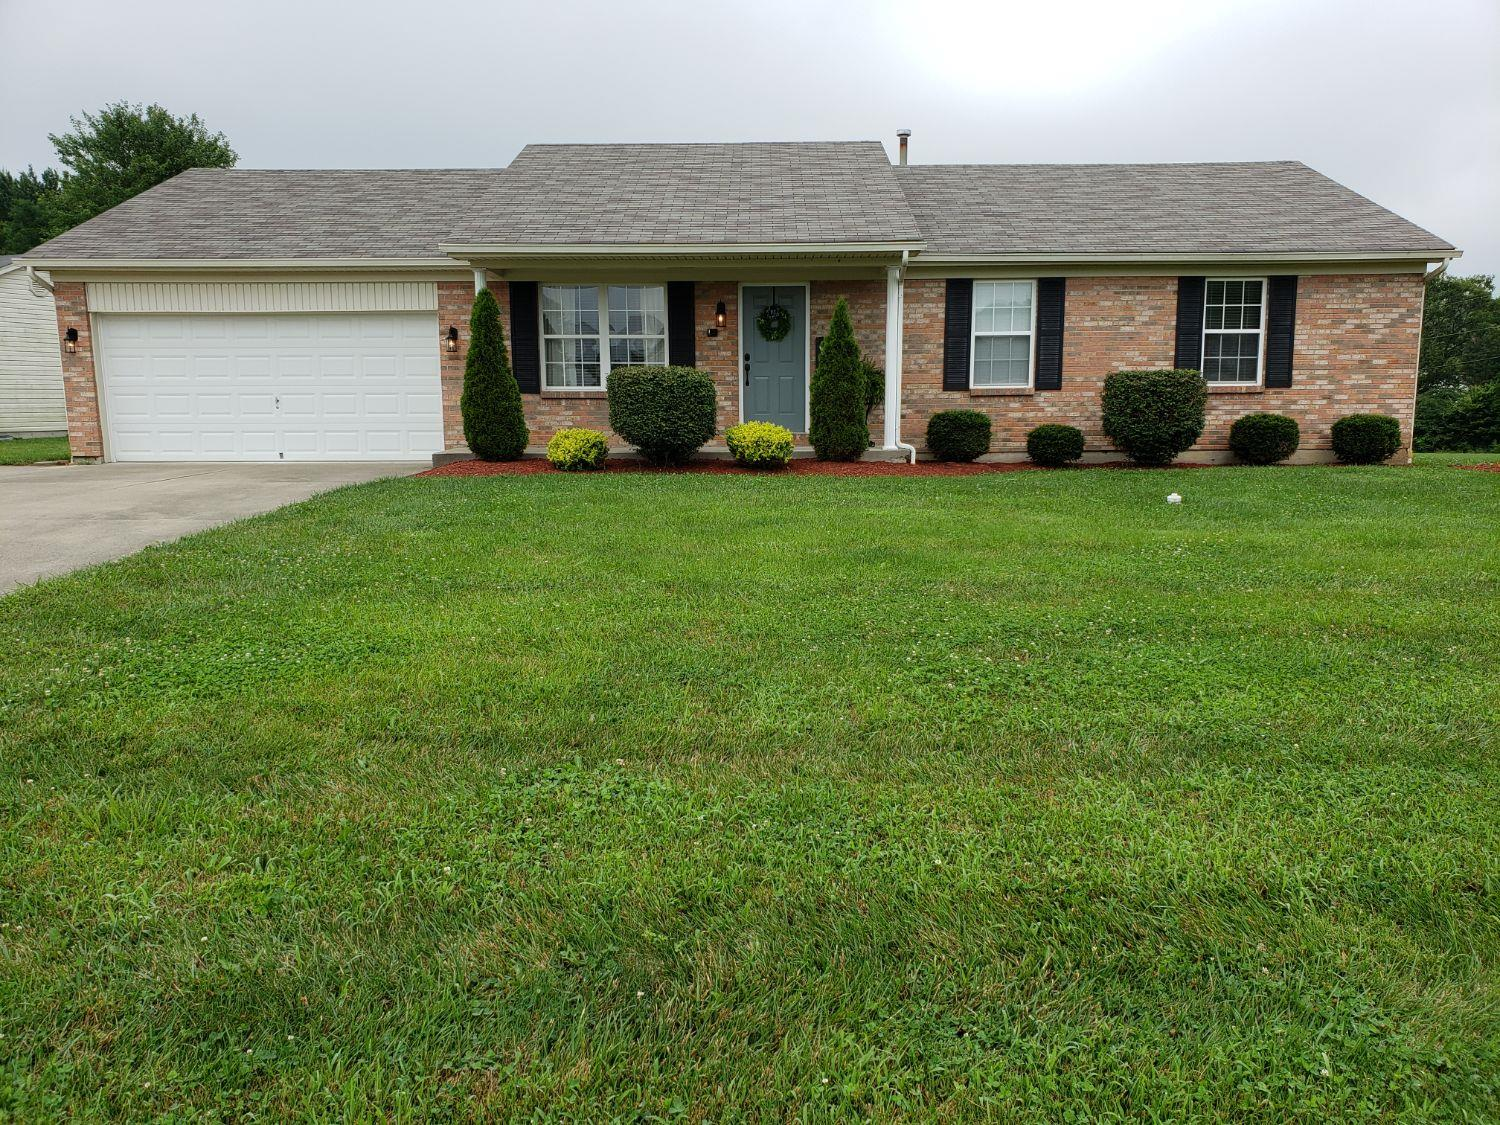 6101 Pine Meadows Dr Goshen Twp., OH